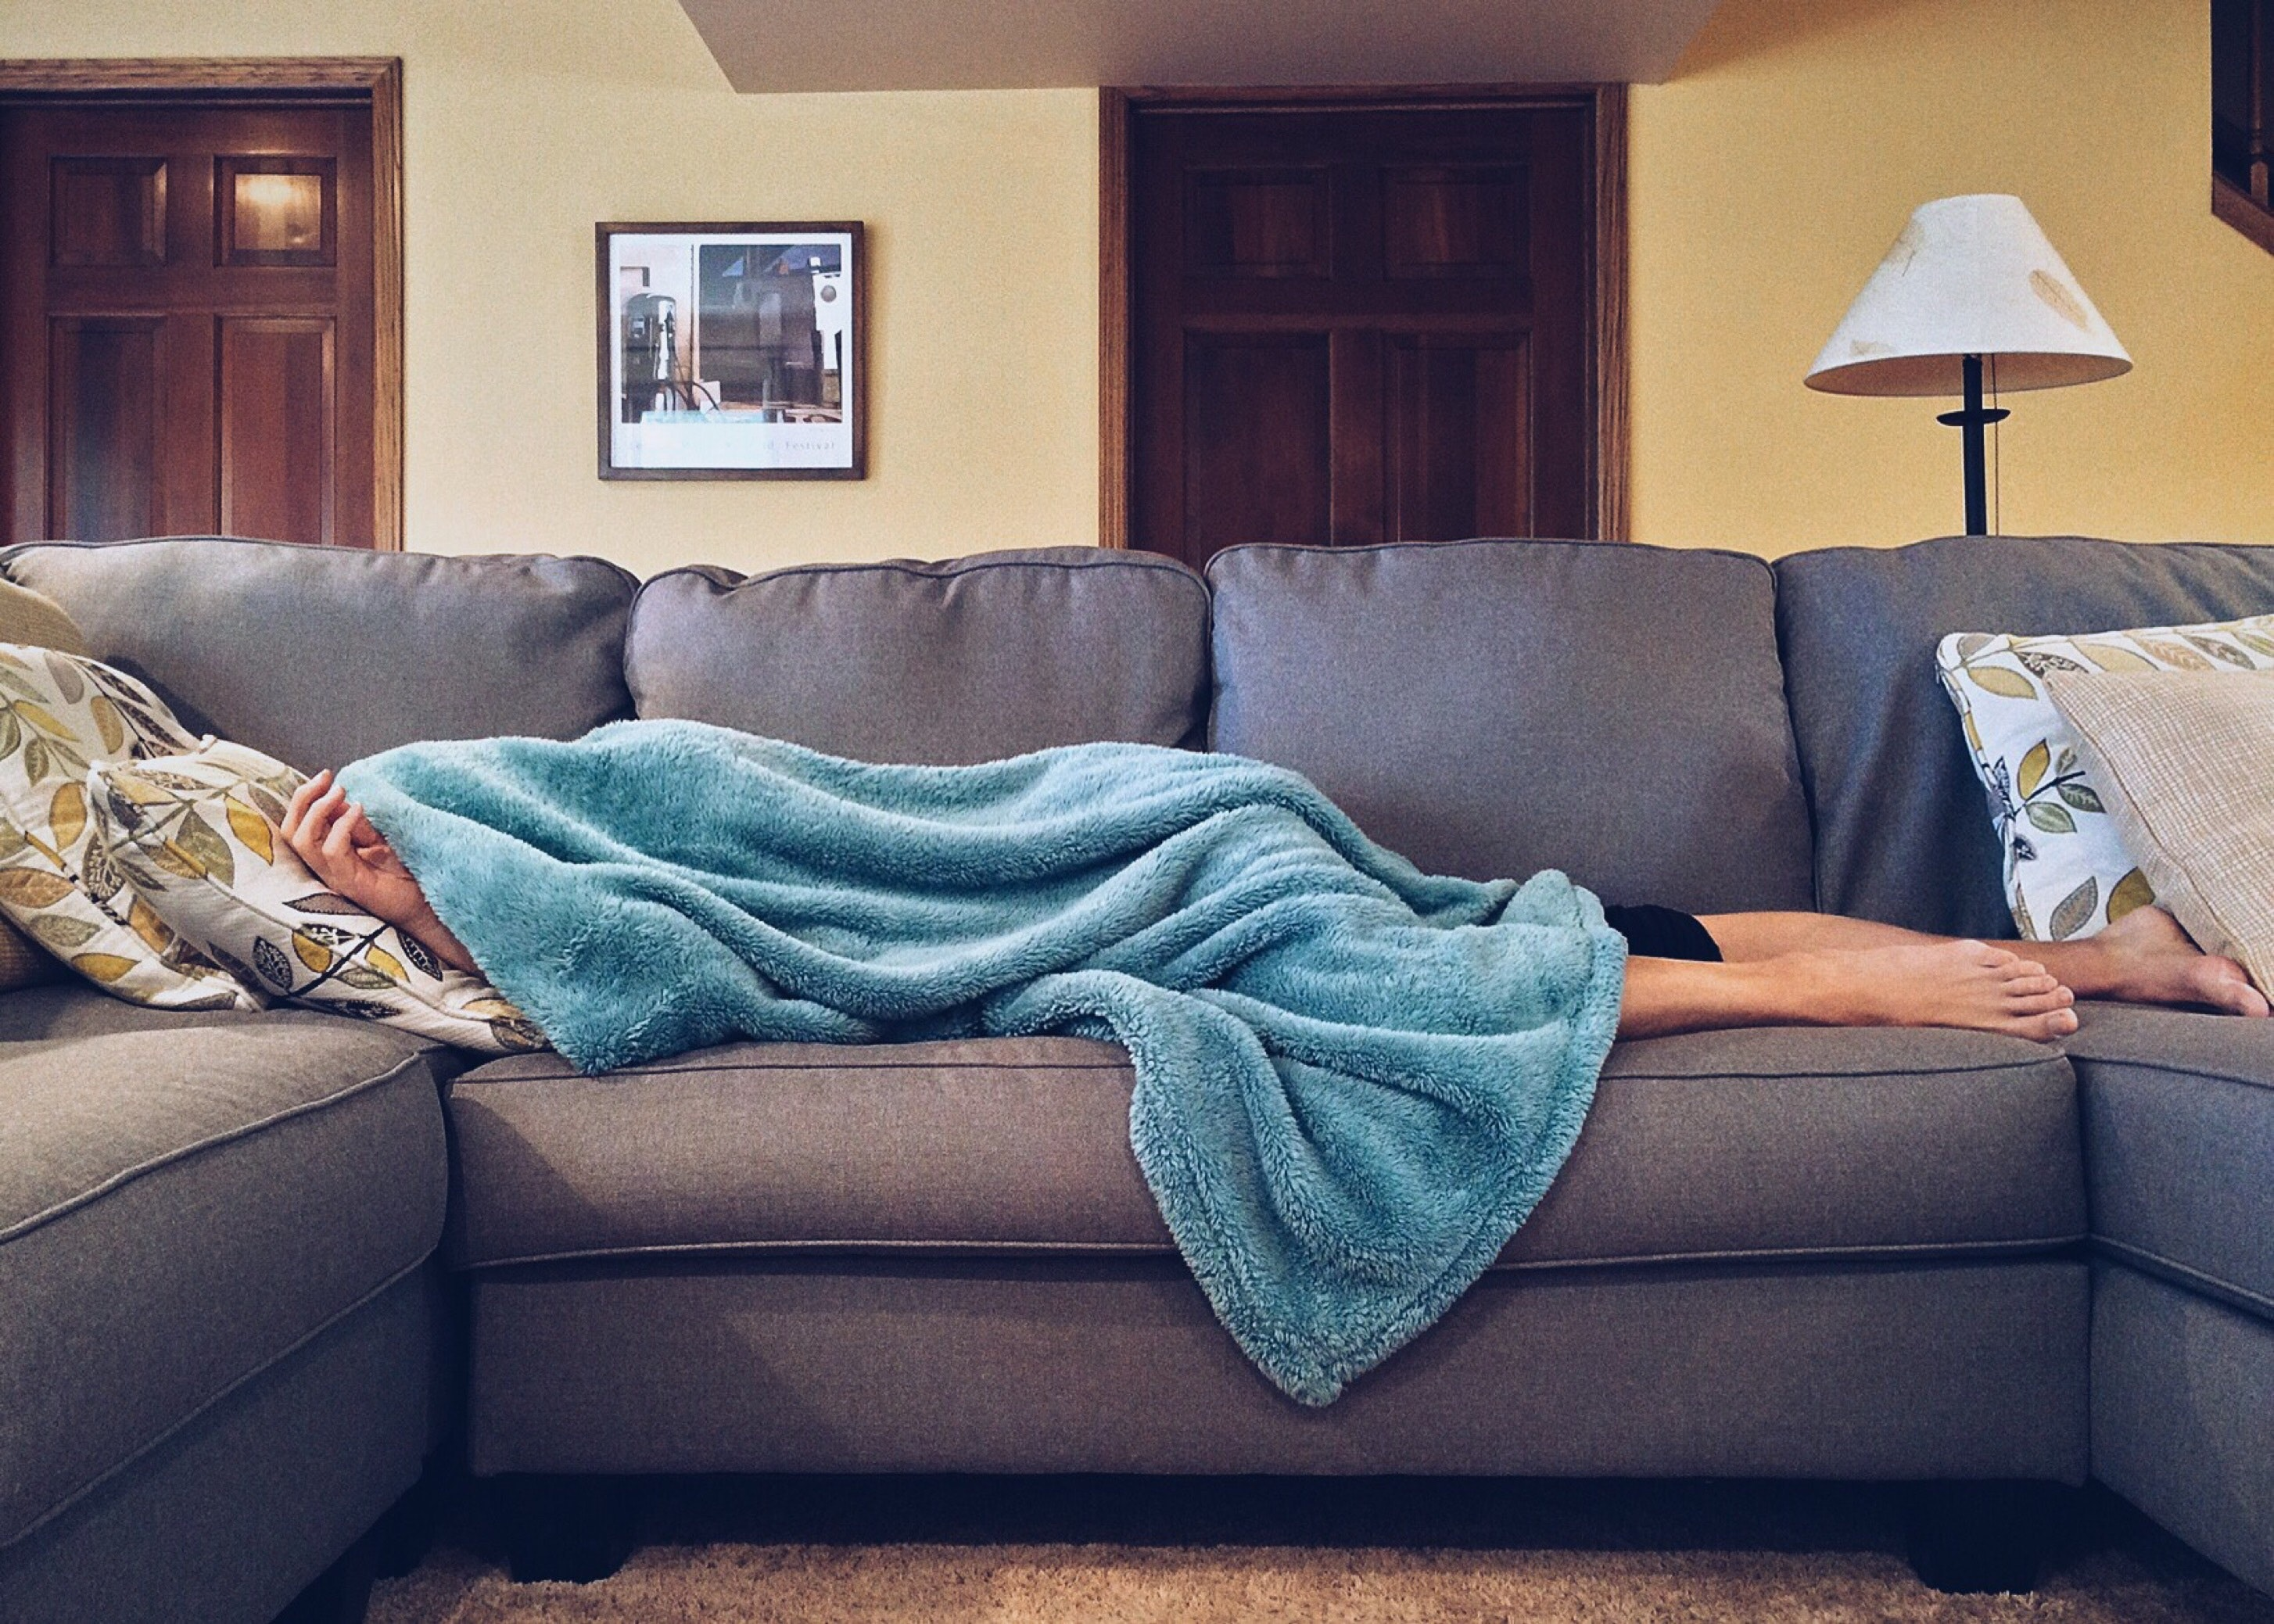 22 Ways to Prevent Common Sleep Problems